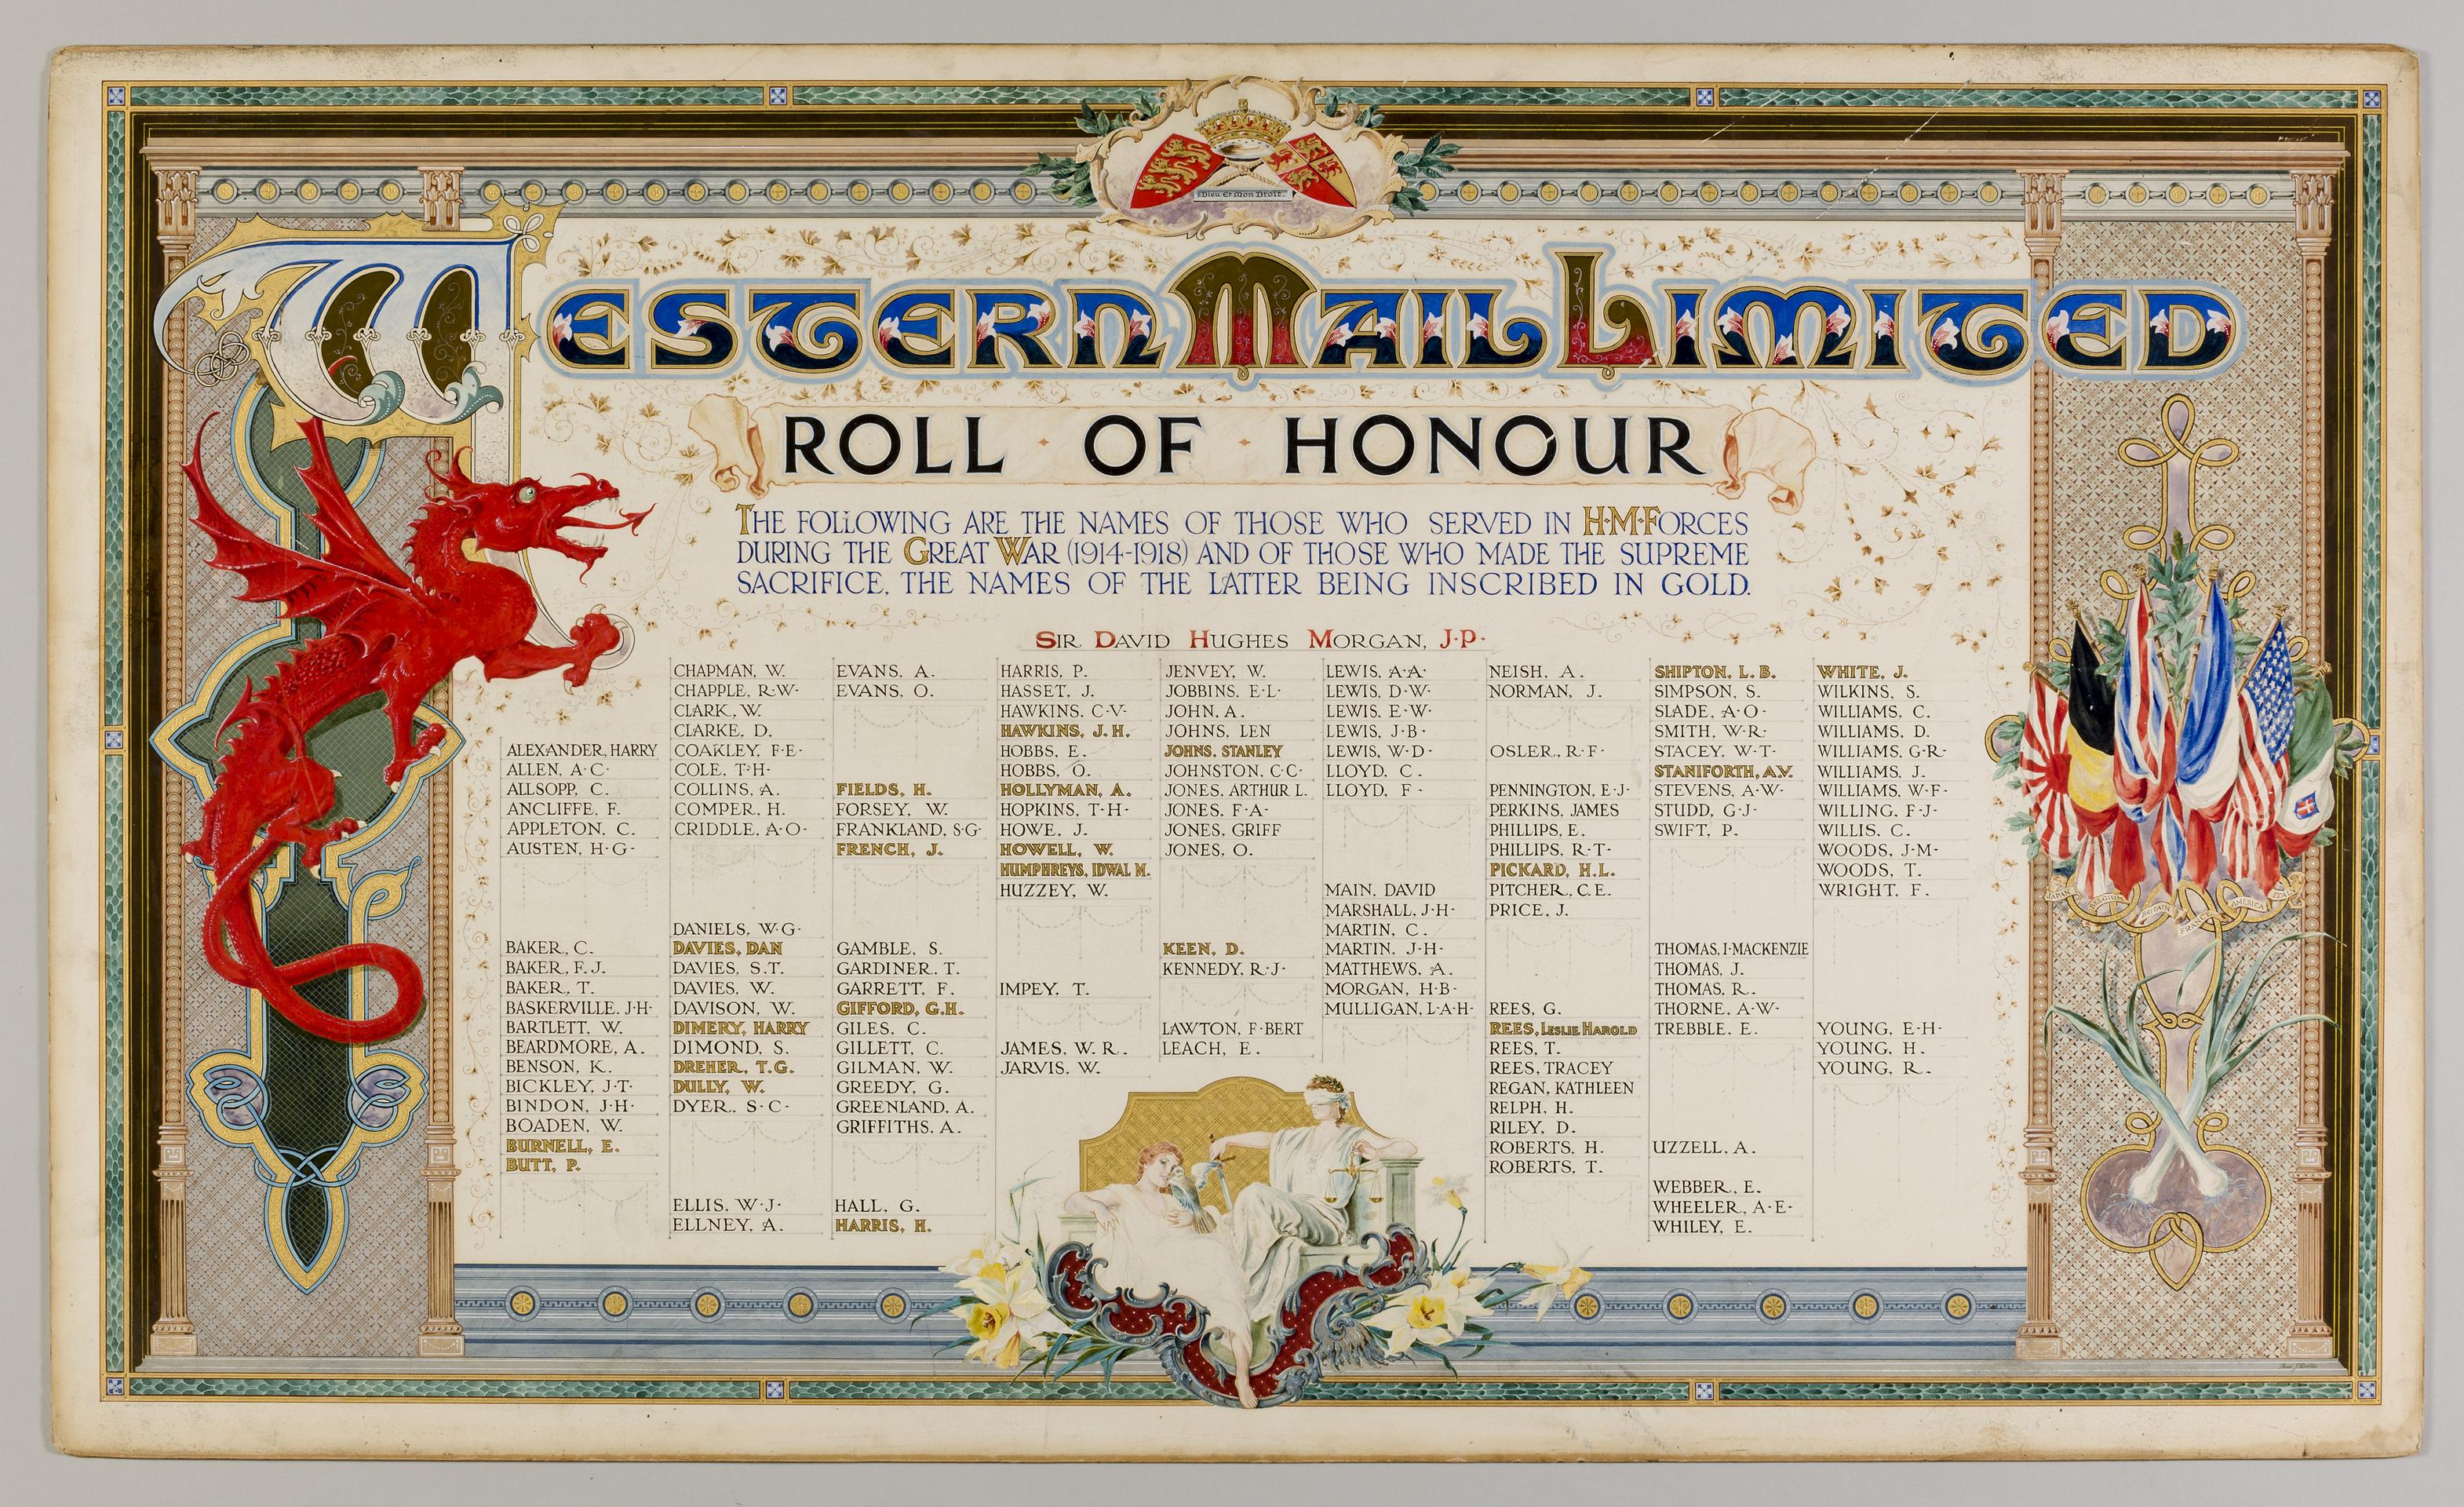 Western Mail Ltd WWI Roll of Honour